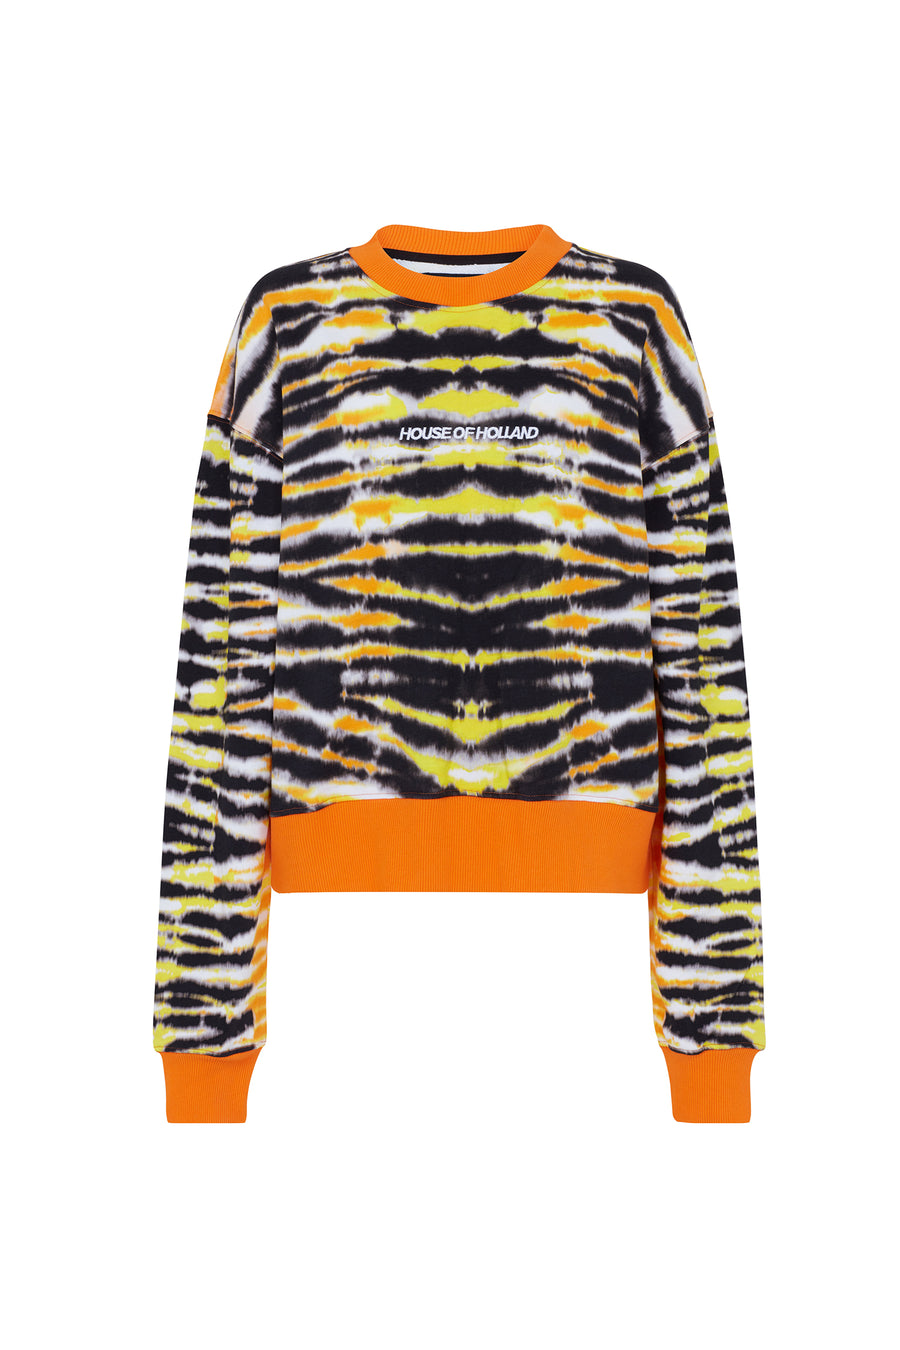 Animal Tie Dye Sweatshirt